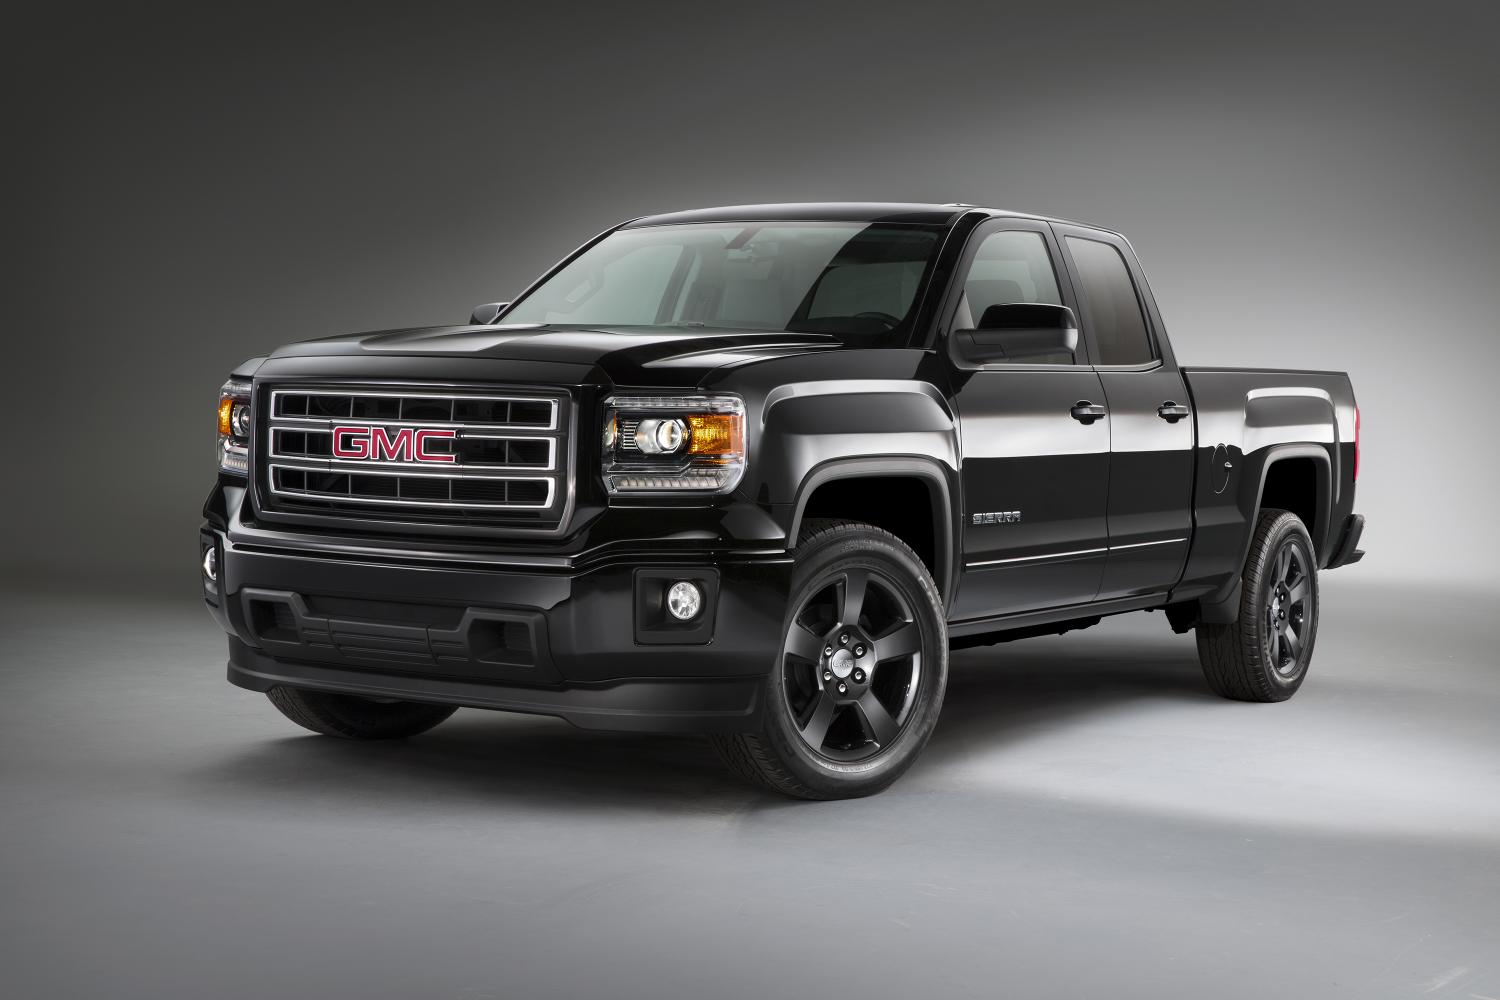 Gmc Sierra Elevation Edition V6 285hp V8 355hp